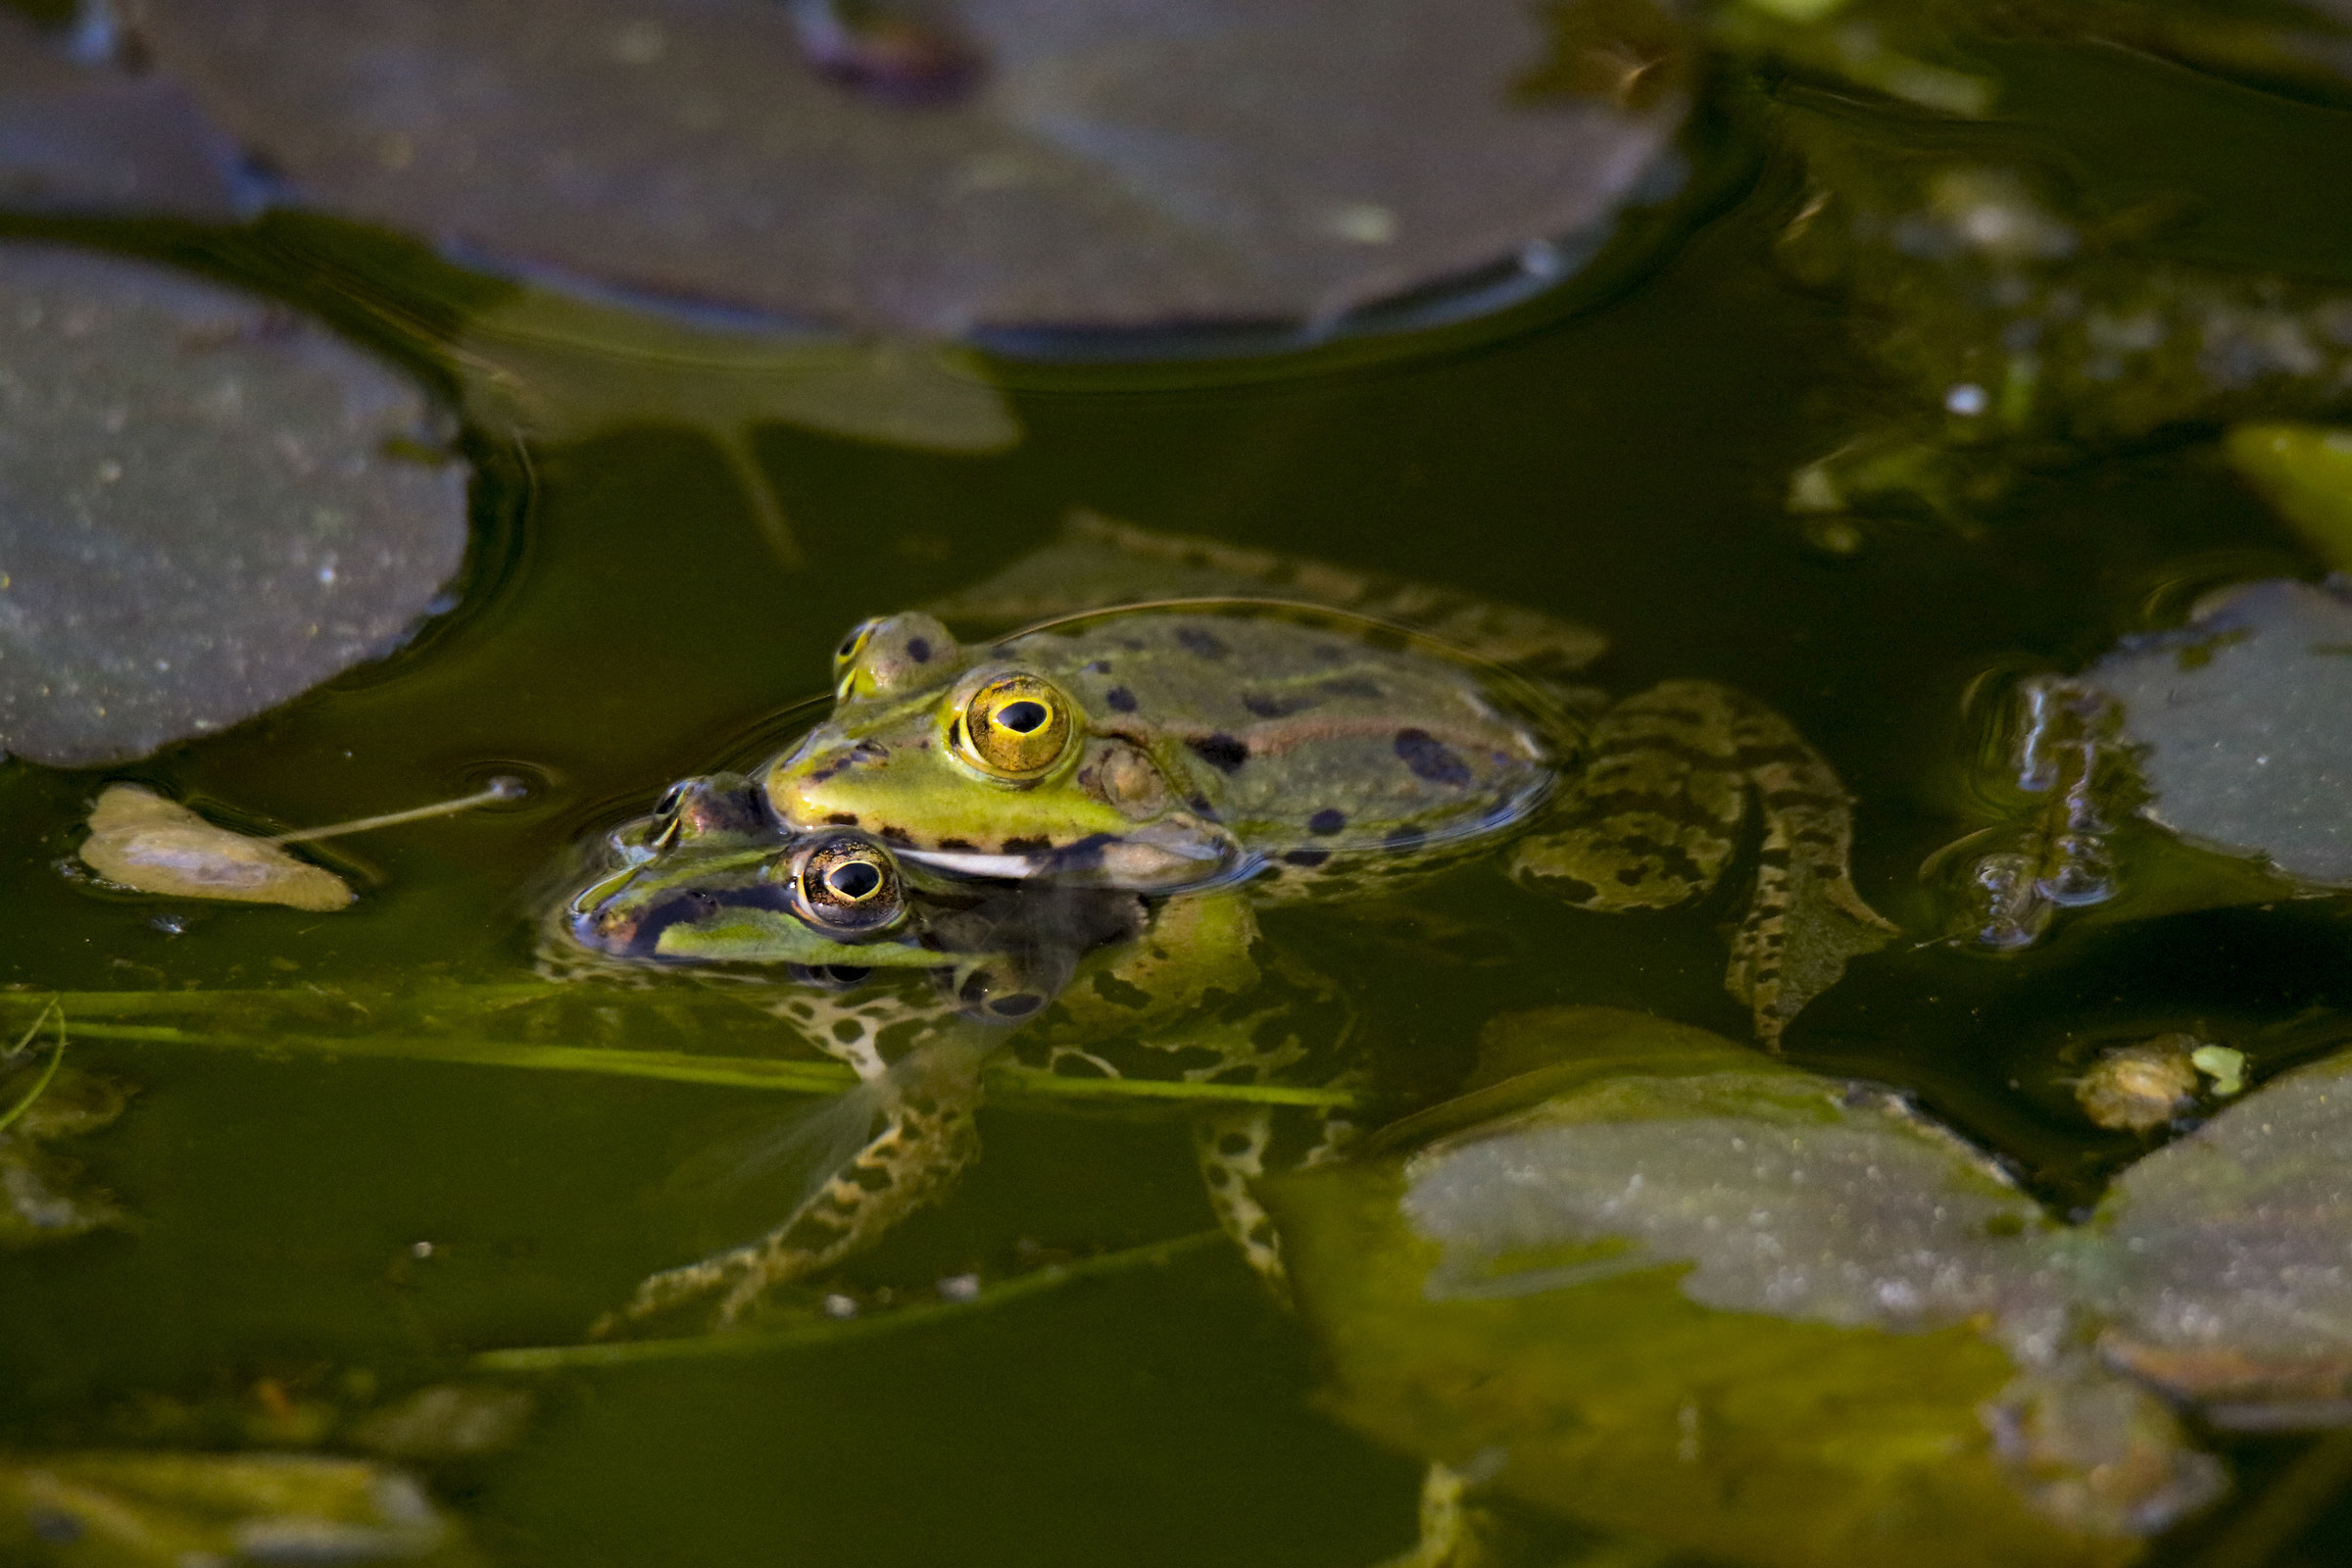 Mating frogs...